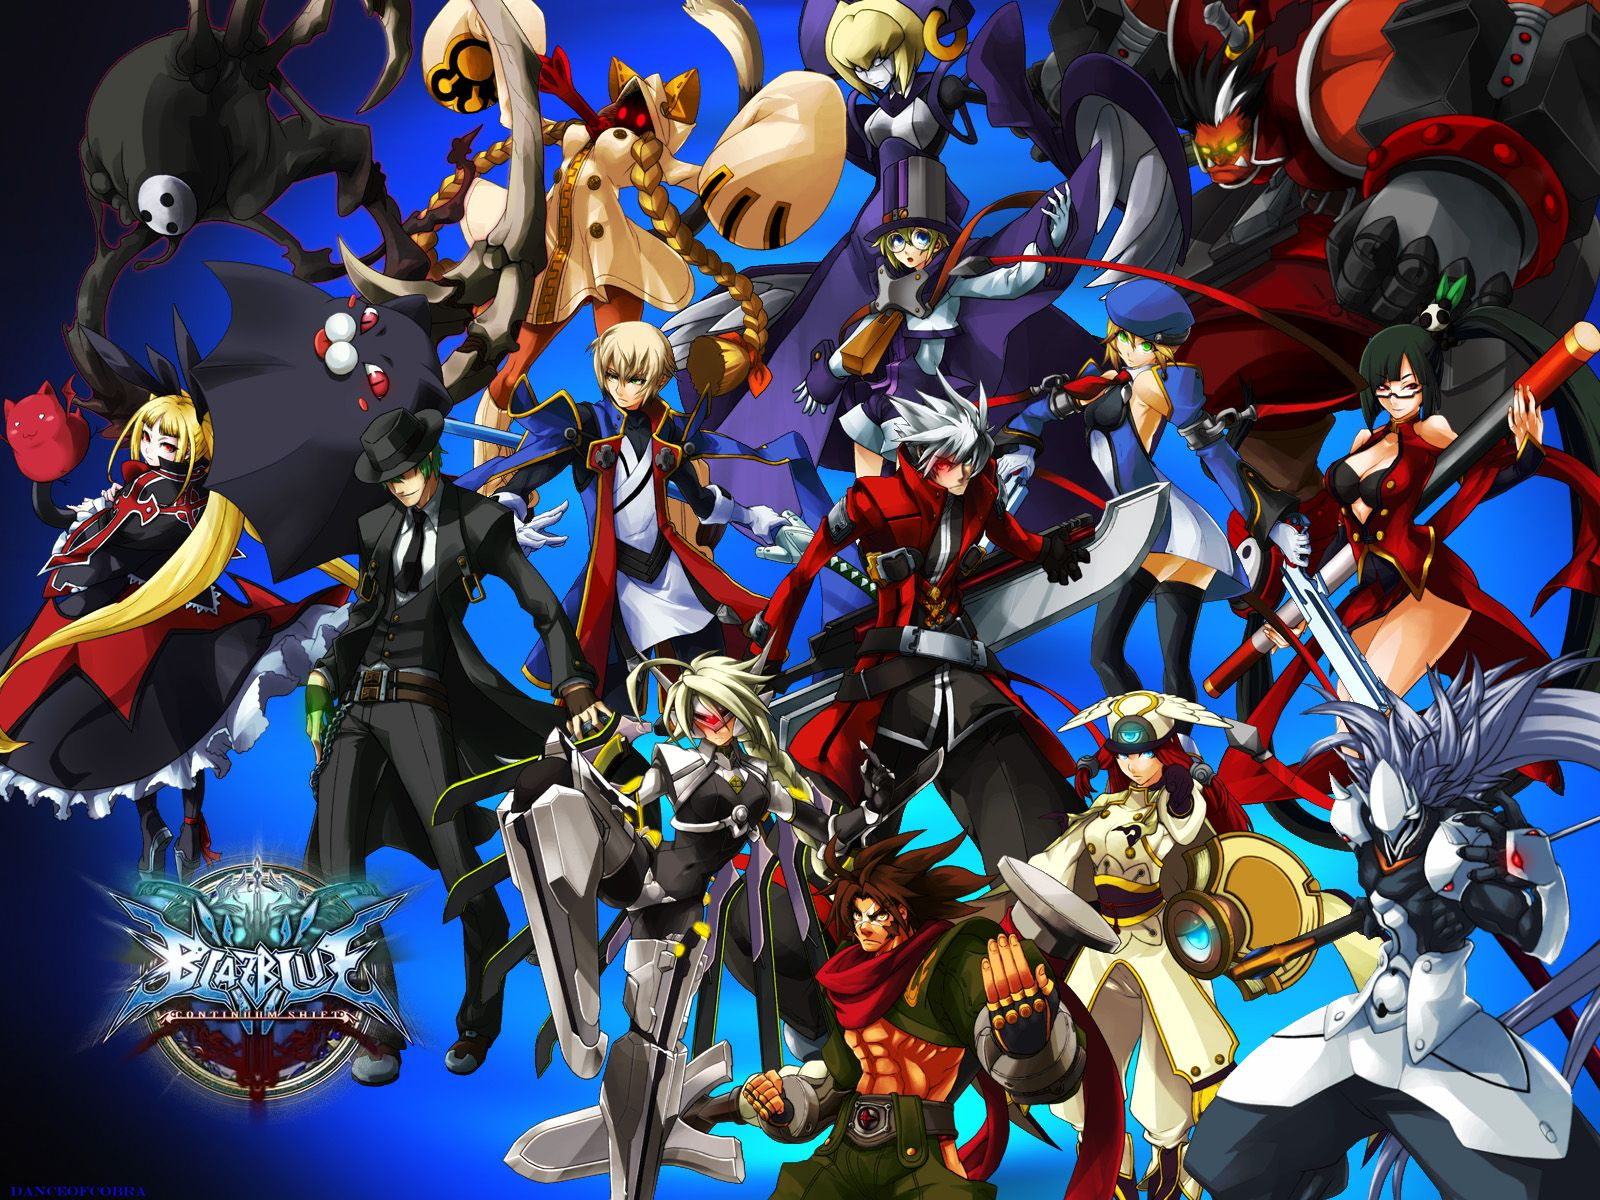 Free Download Games Blazblue Continuum Shift Desktop Wallpaper Nr